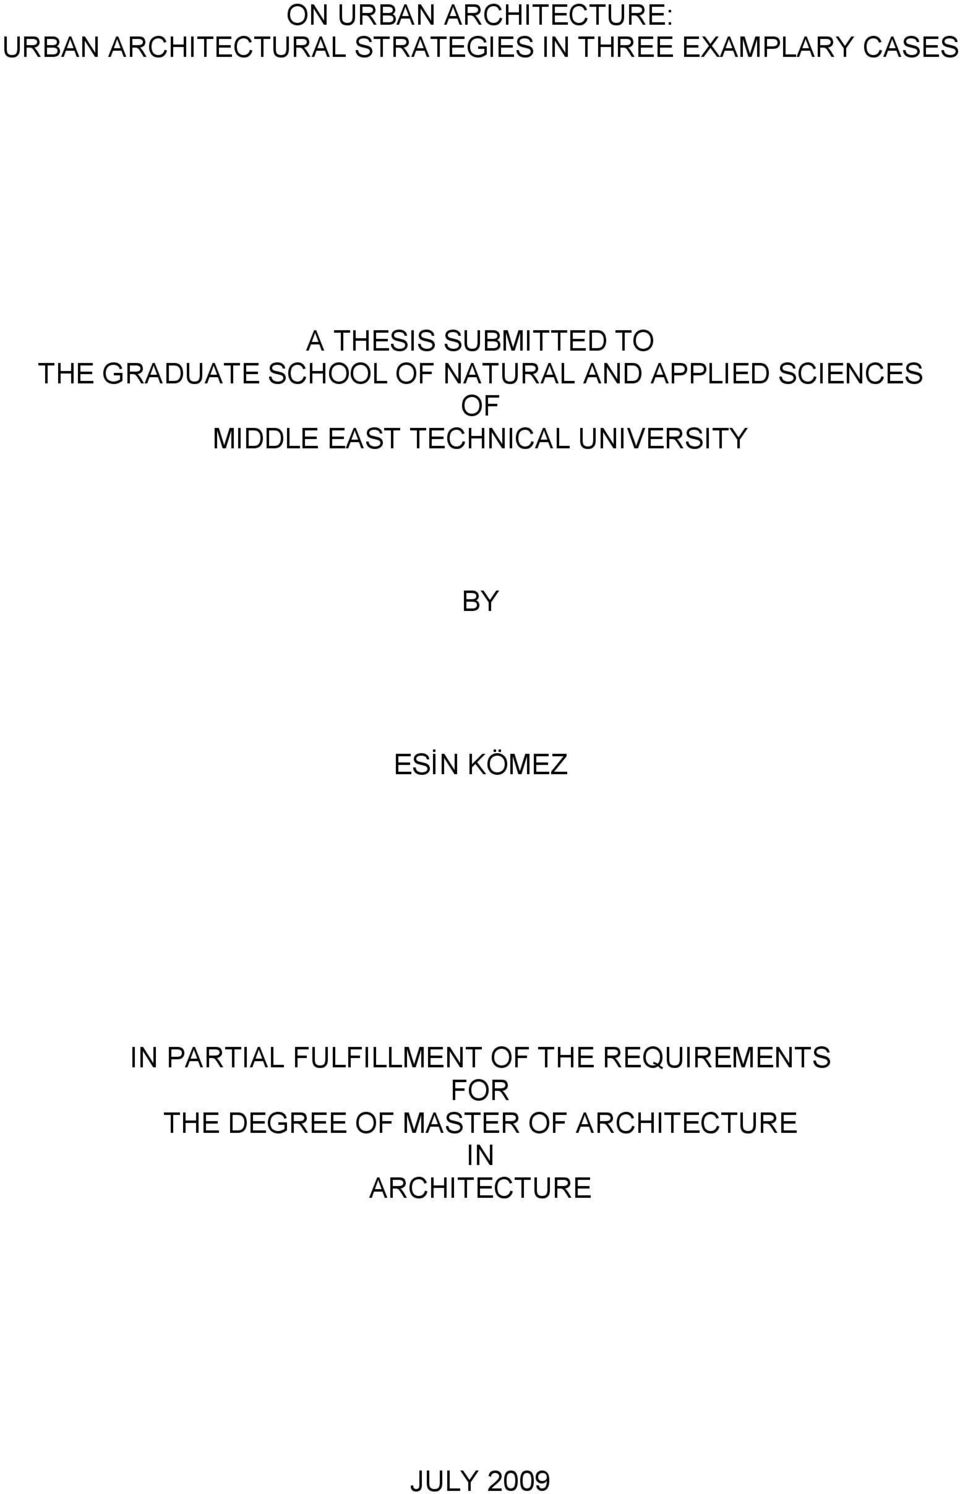 SCIENCES OF MIDDLE EAST TECHNICAL UNIVERSITY BY ESĐN KÖMEZ IN PARTIAL